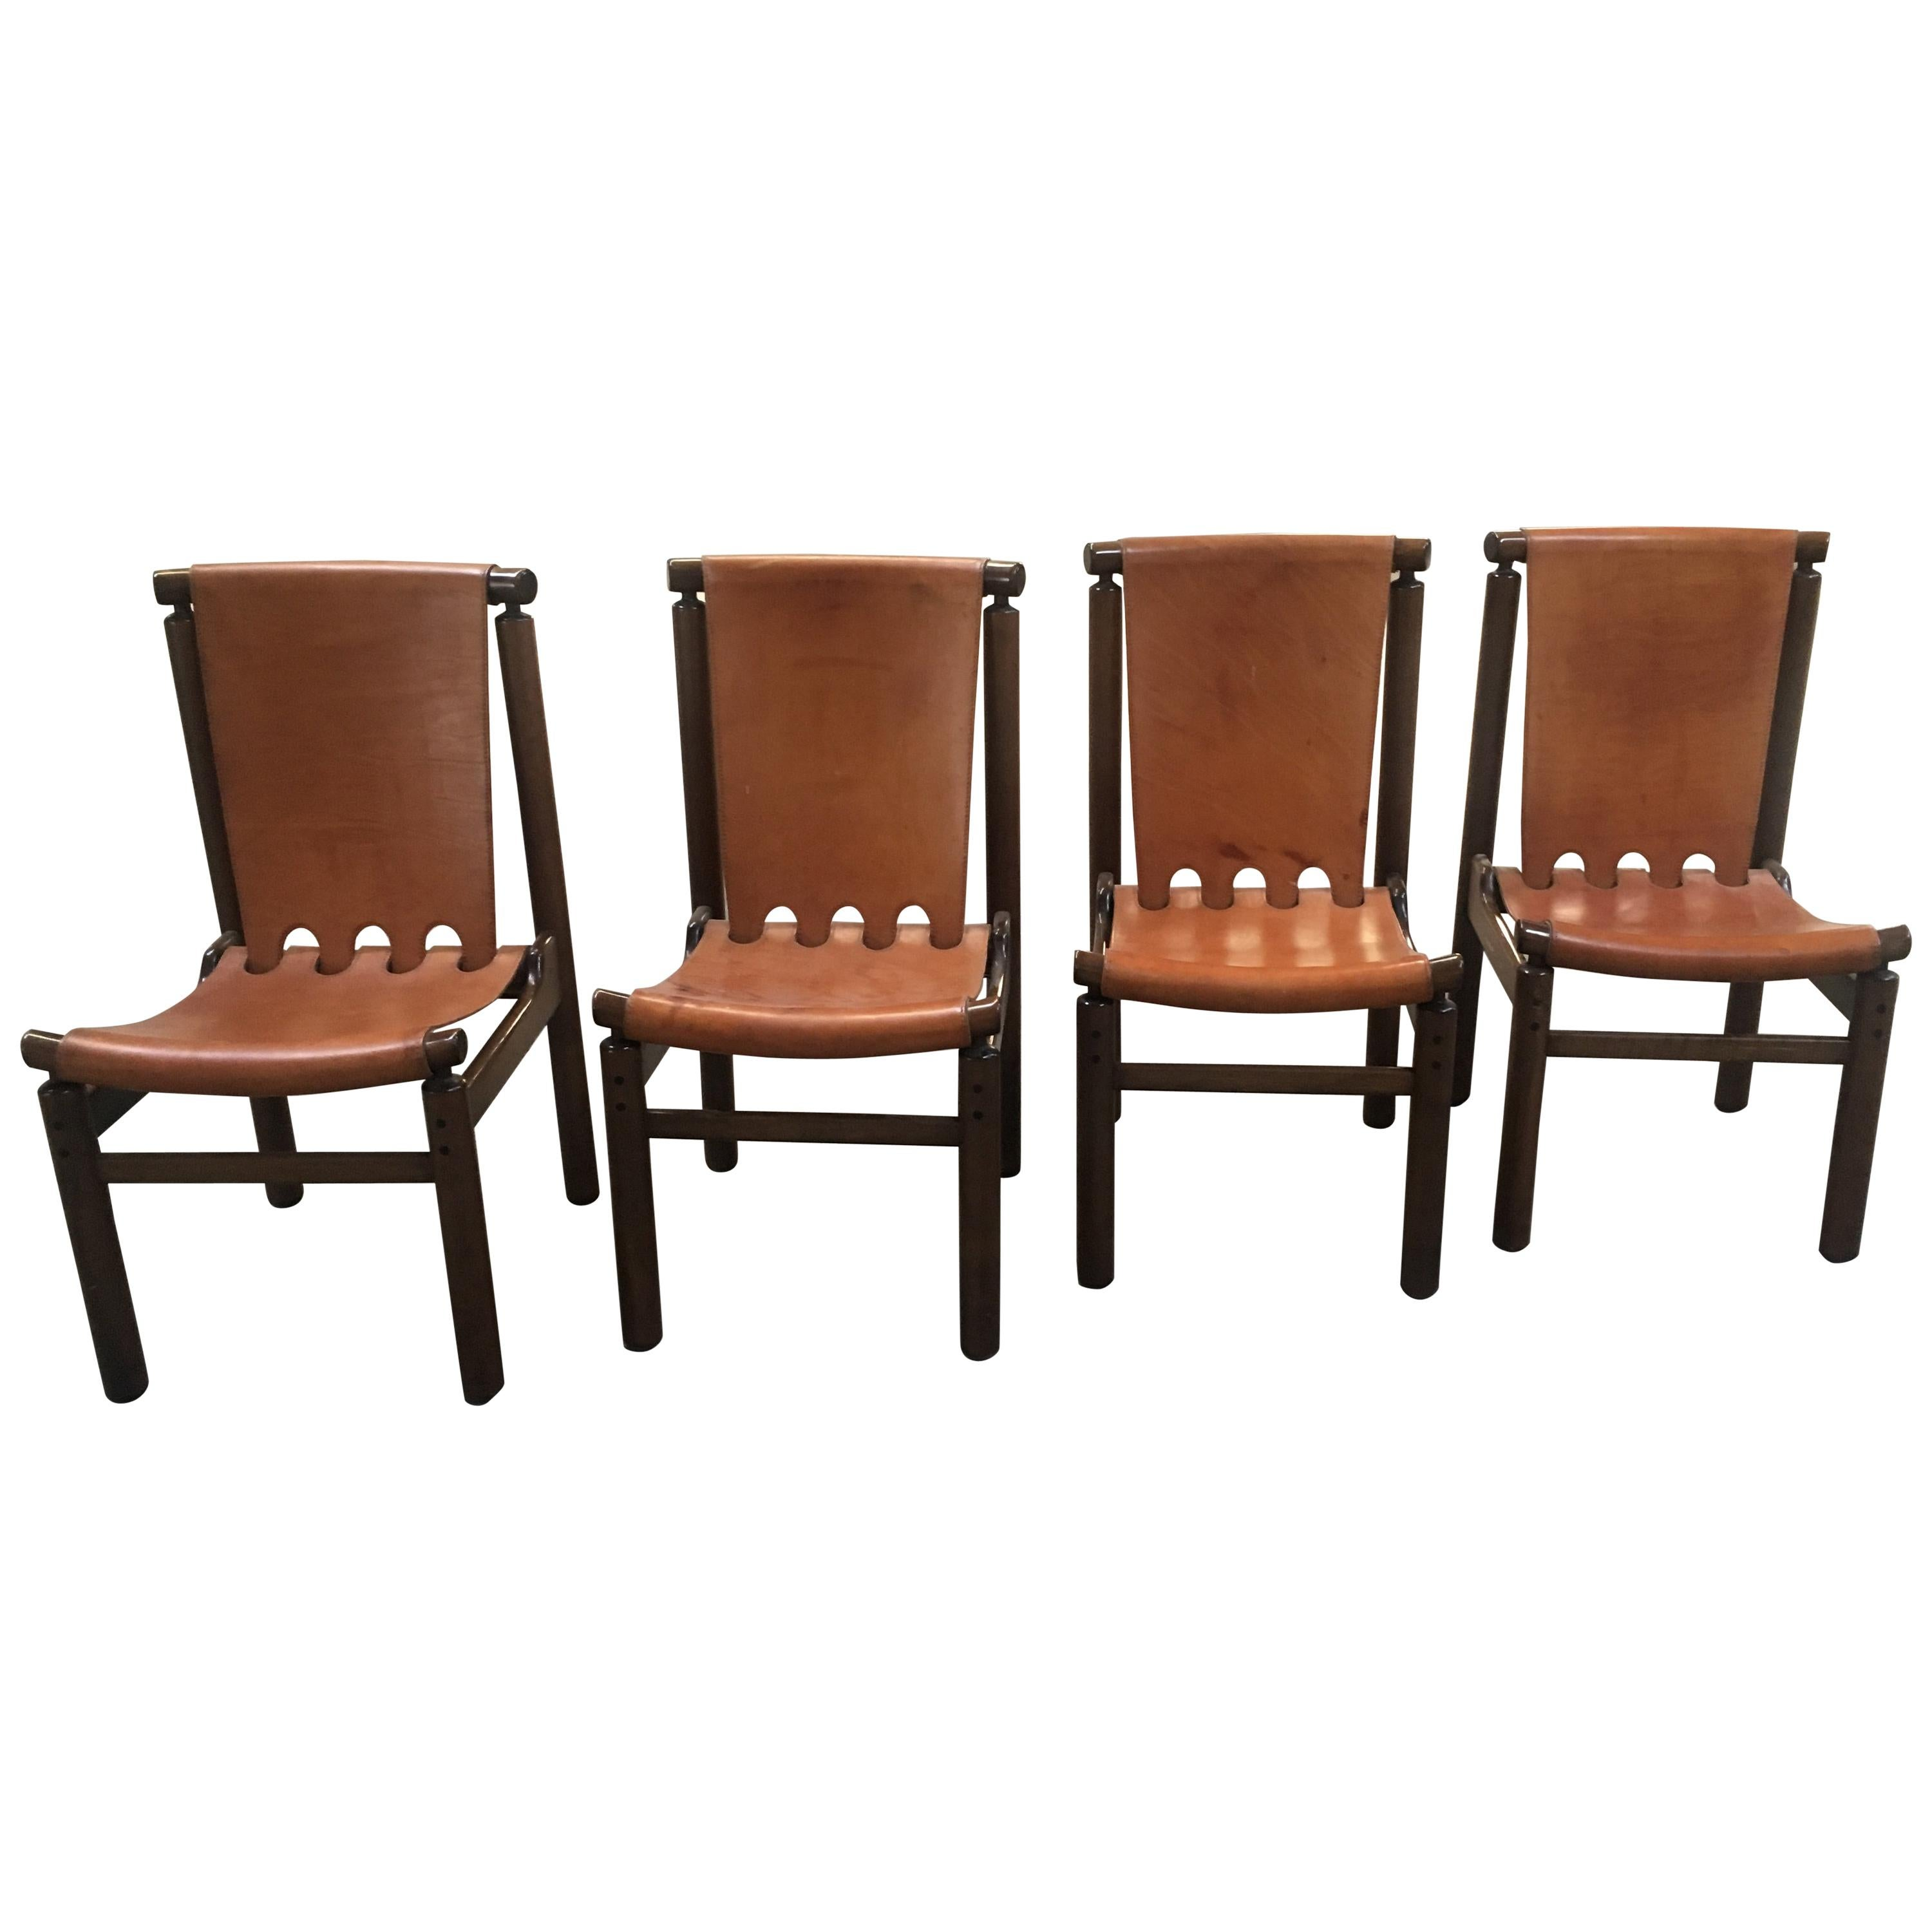 Mid-Century Modern Italian Set of 4 Leather and Wood Chairs by Tapiovaara, 1950s